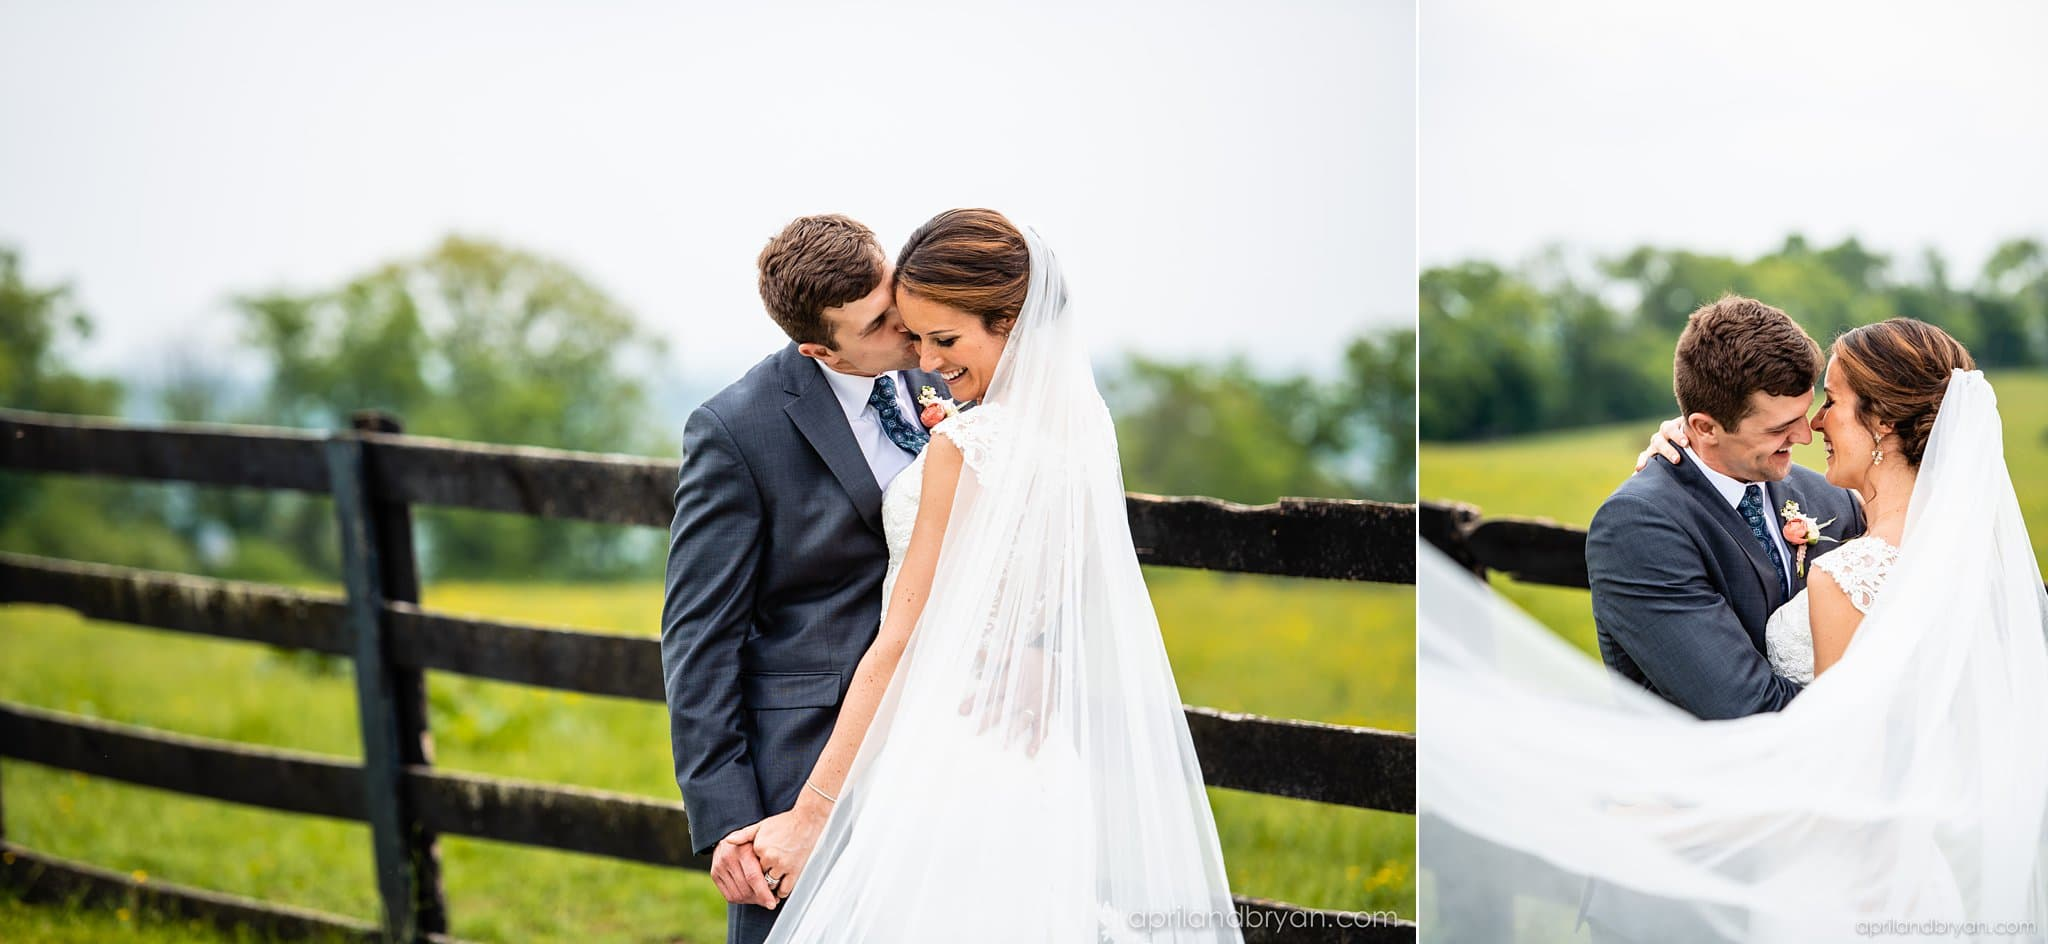 Lauxmont Farm Wedding Photographer